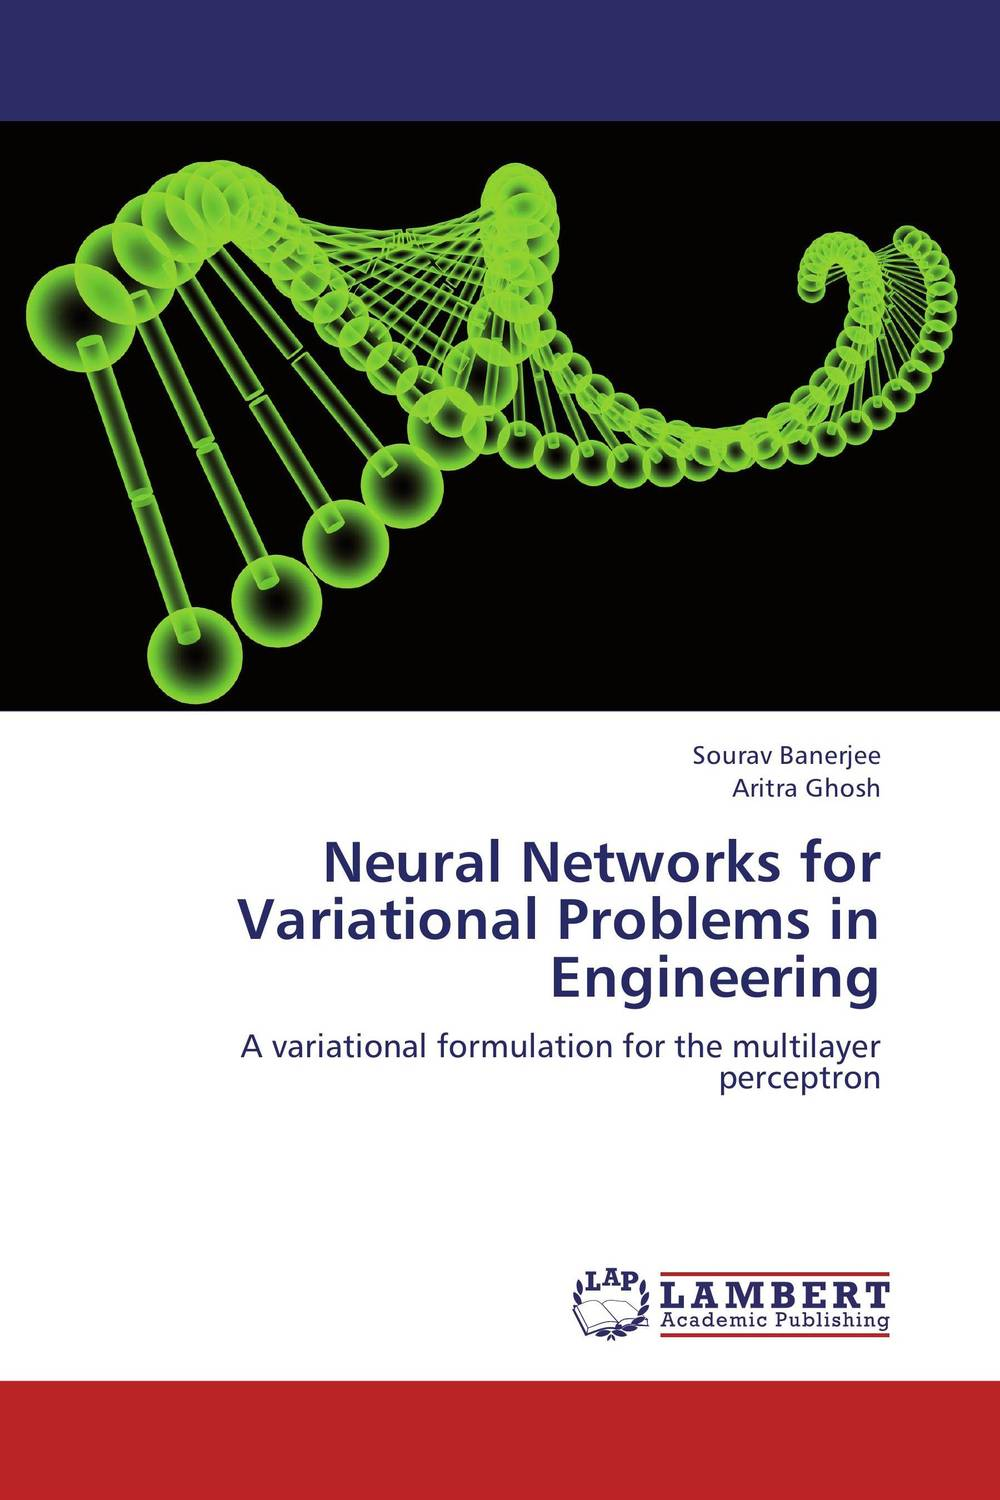 Neural Networks for Variational Problems in Engineering collocation methods for volterra integral and related functional differential equations